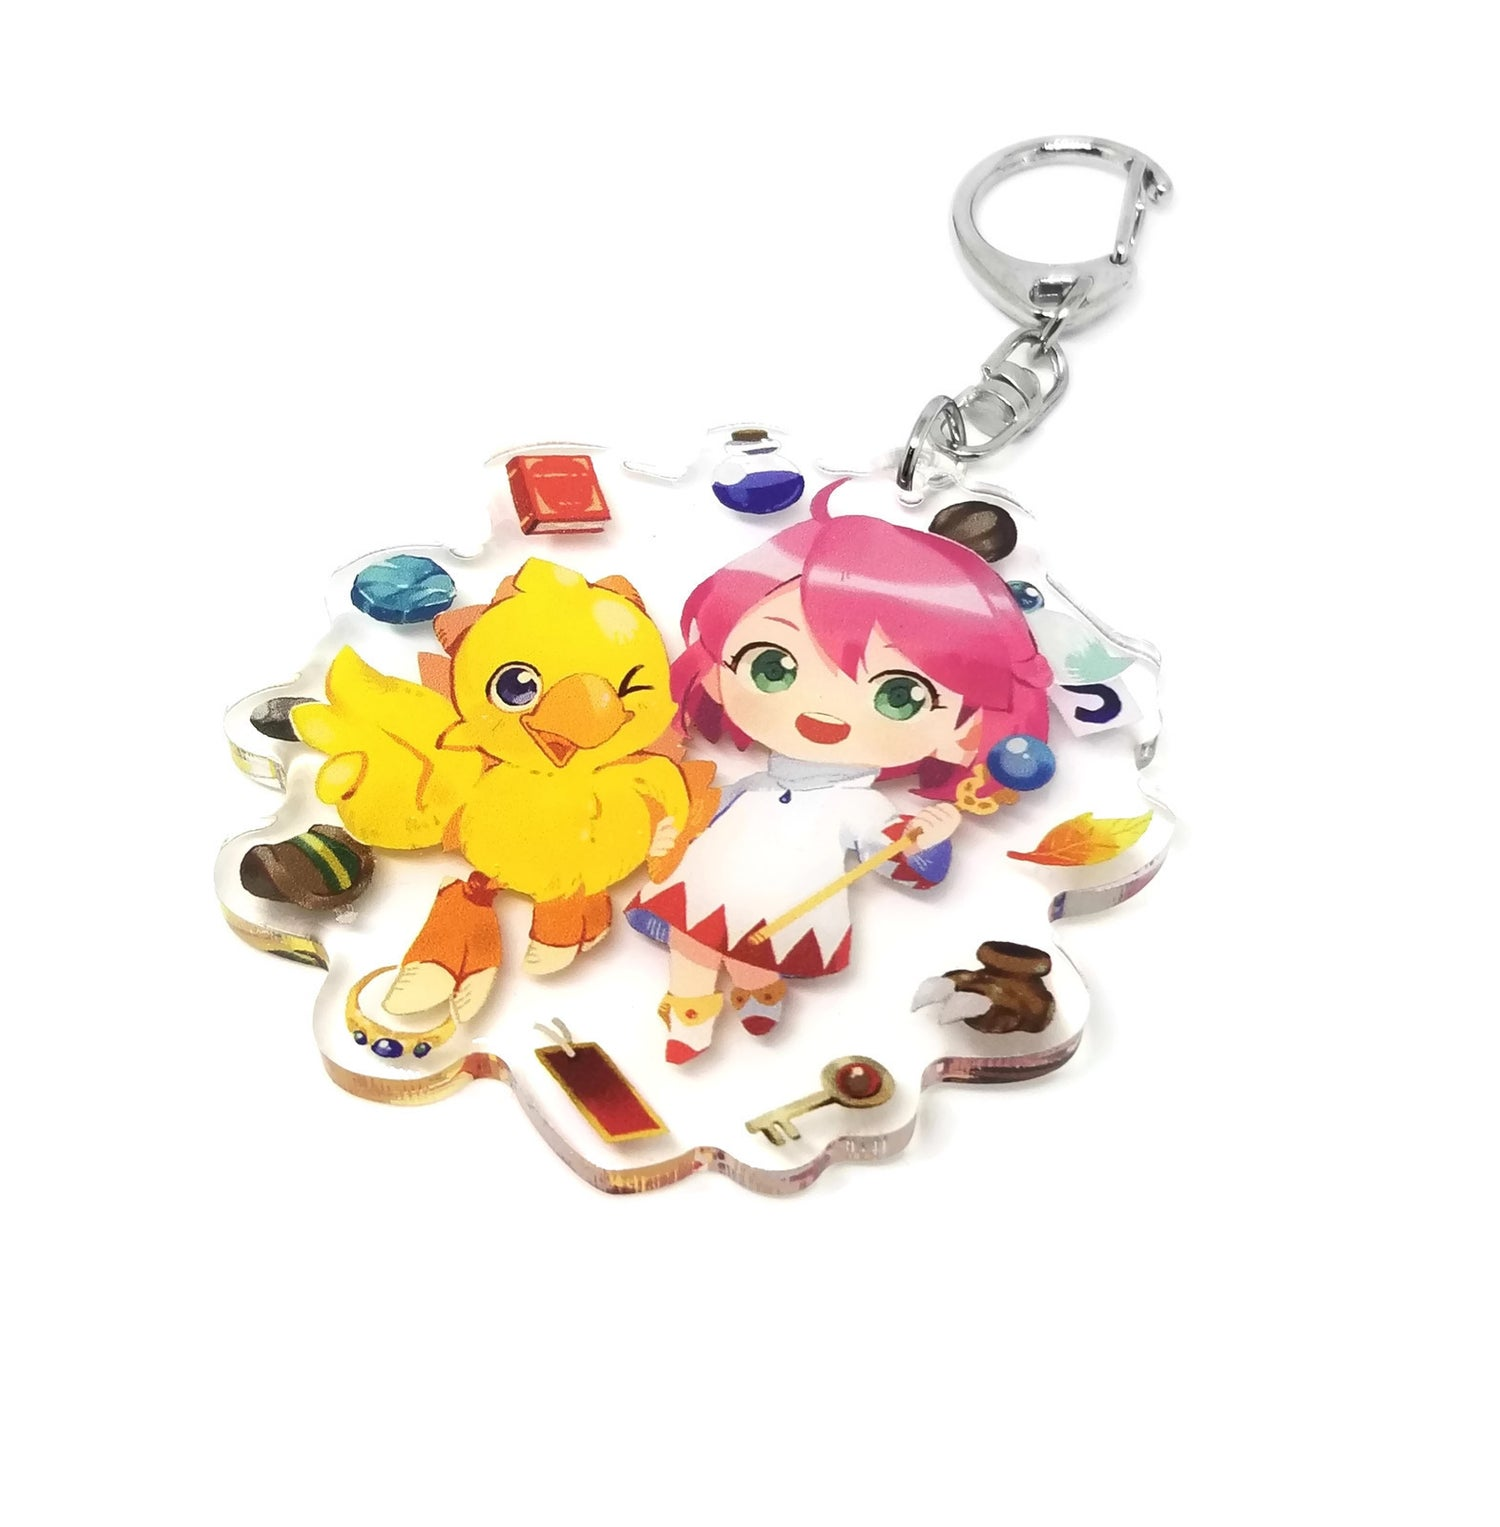 Image of Chocobo's Dungeon 2 : Acrylic charm